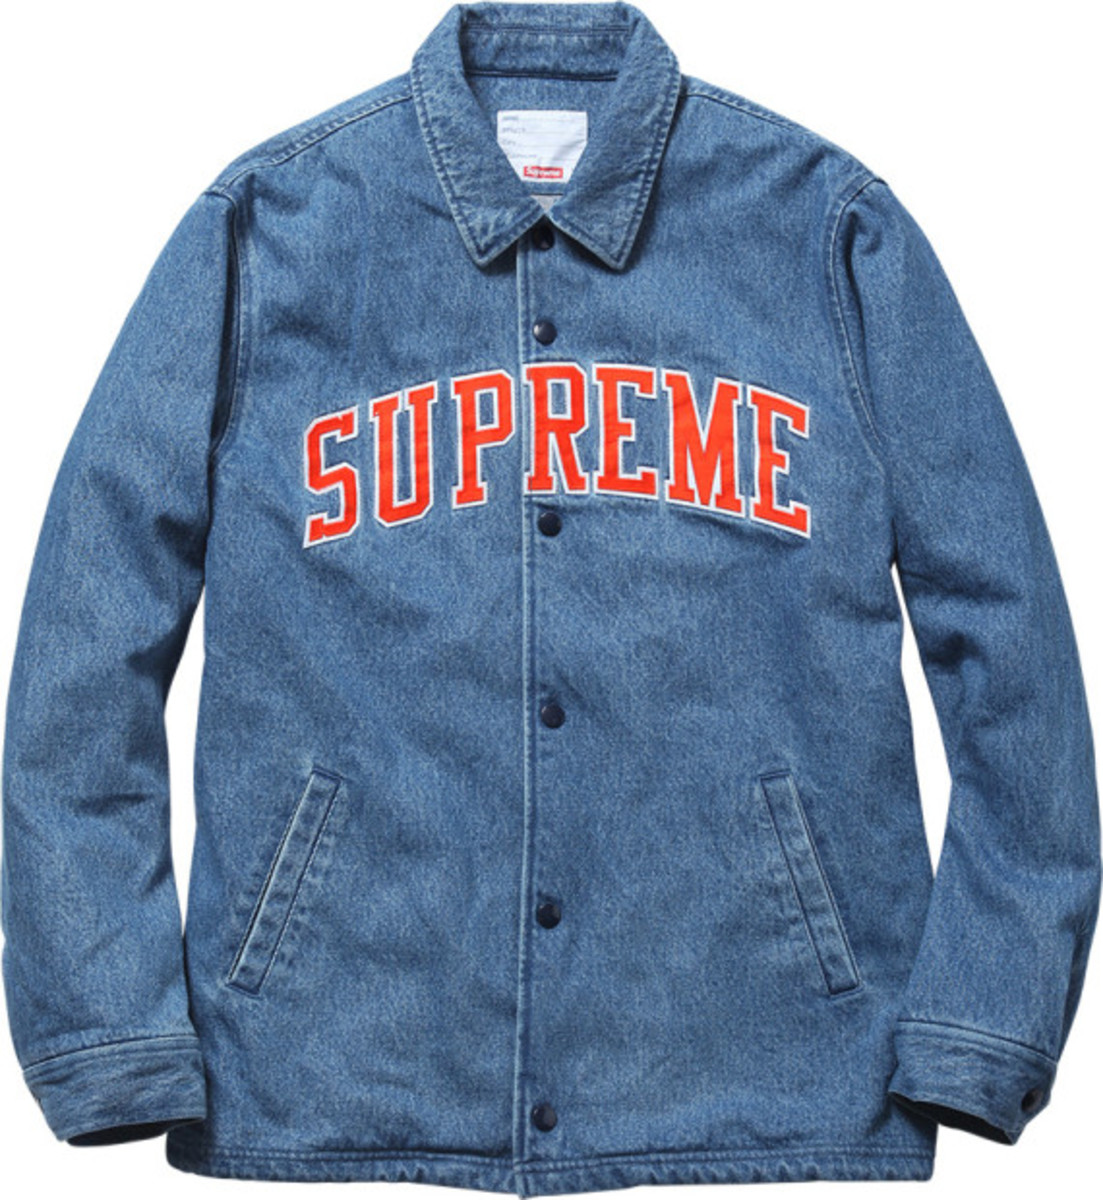 supreme-fall-winter-2013-apparel-collection-092